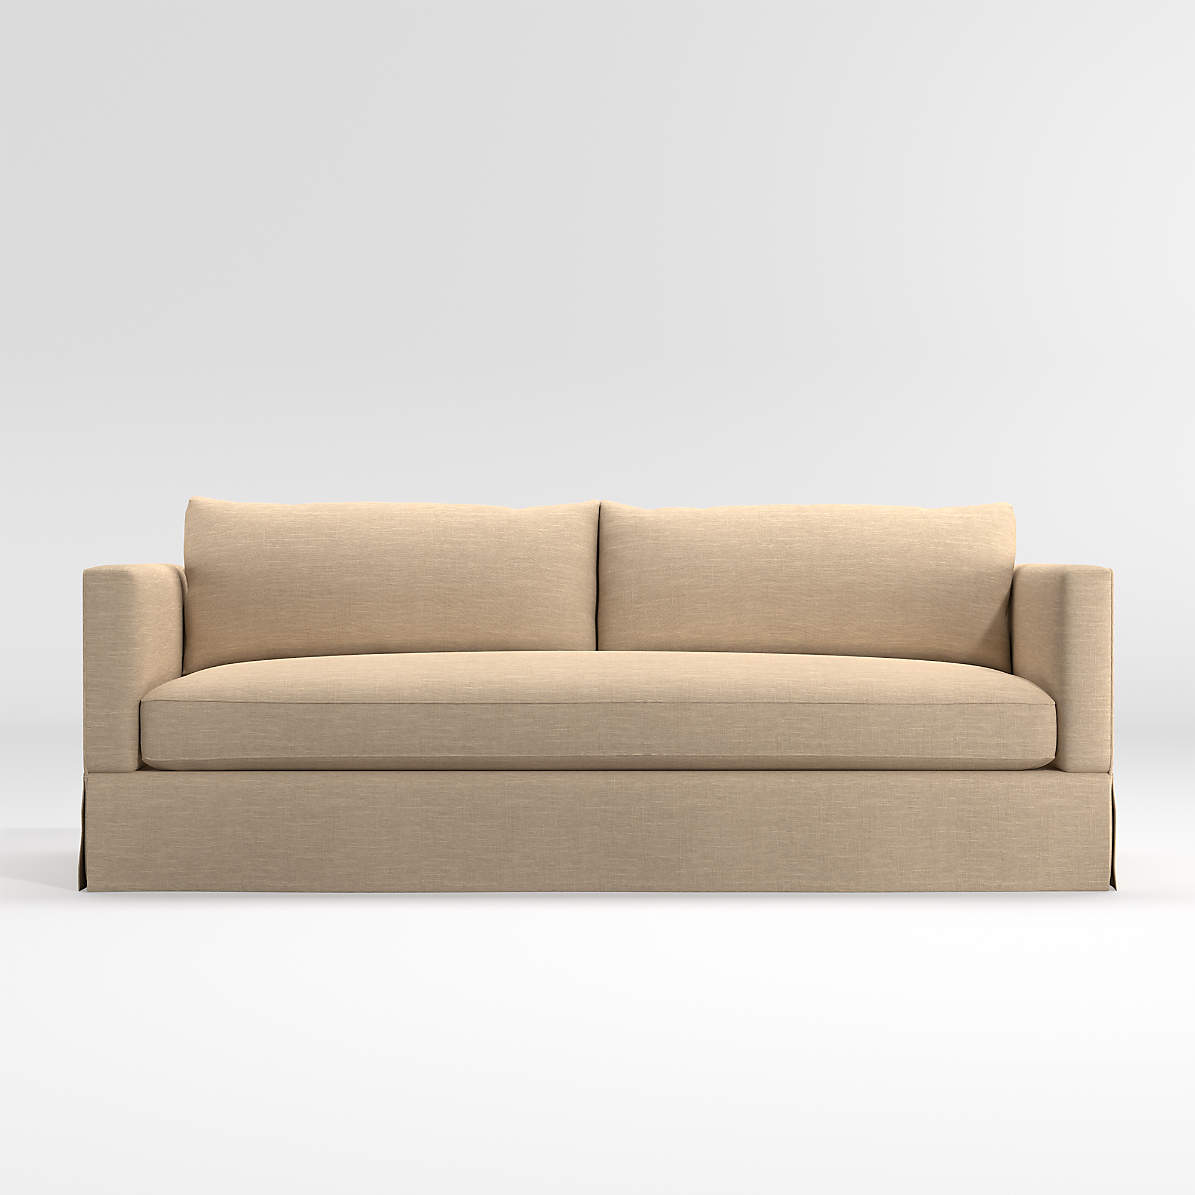 Magritte Queen Sleeper Sofa With Air Mattress Crate And Barrel